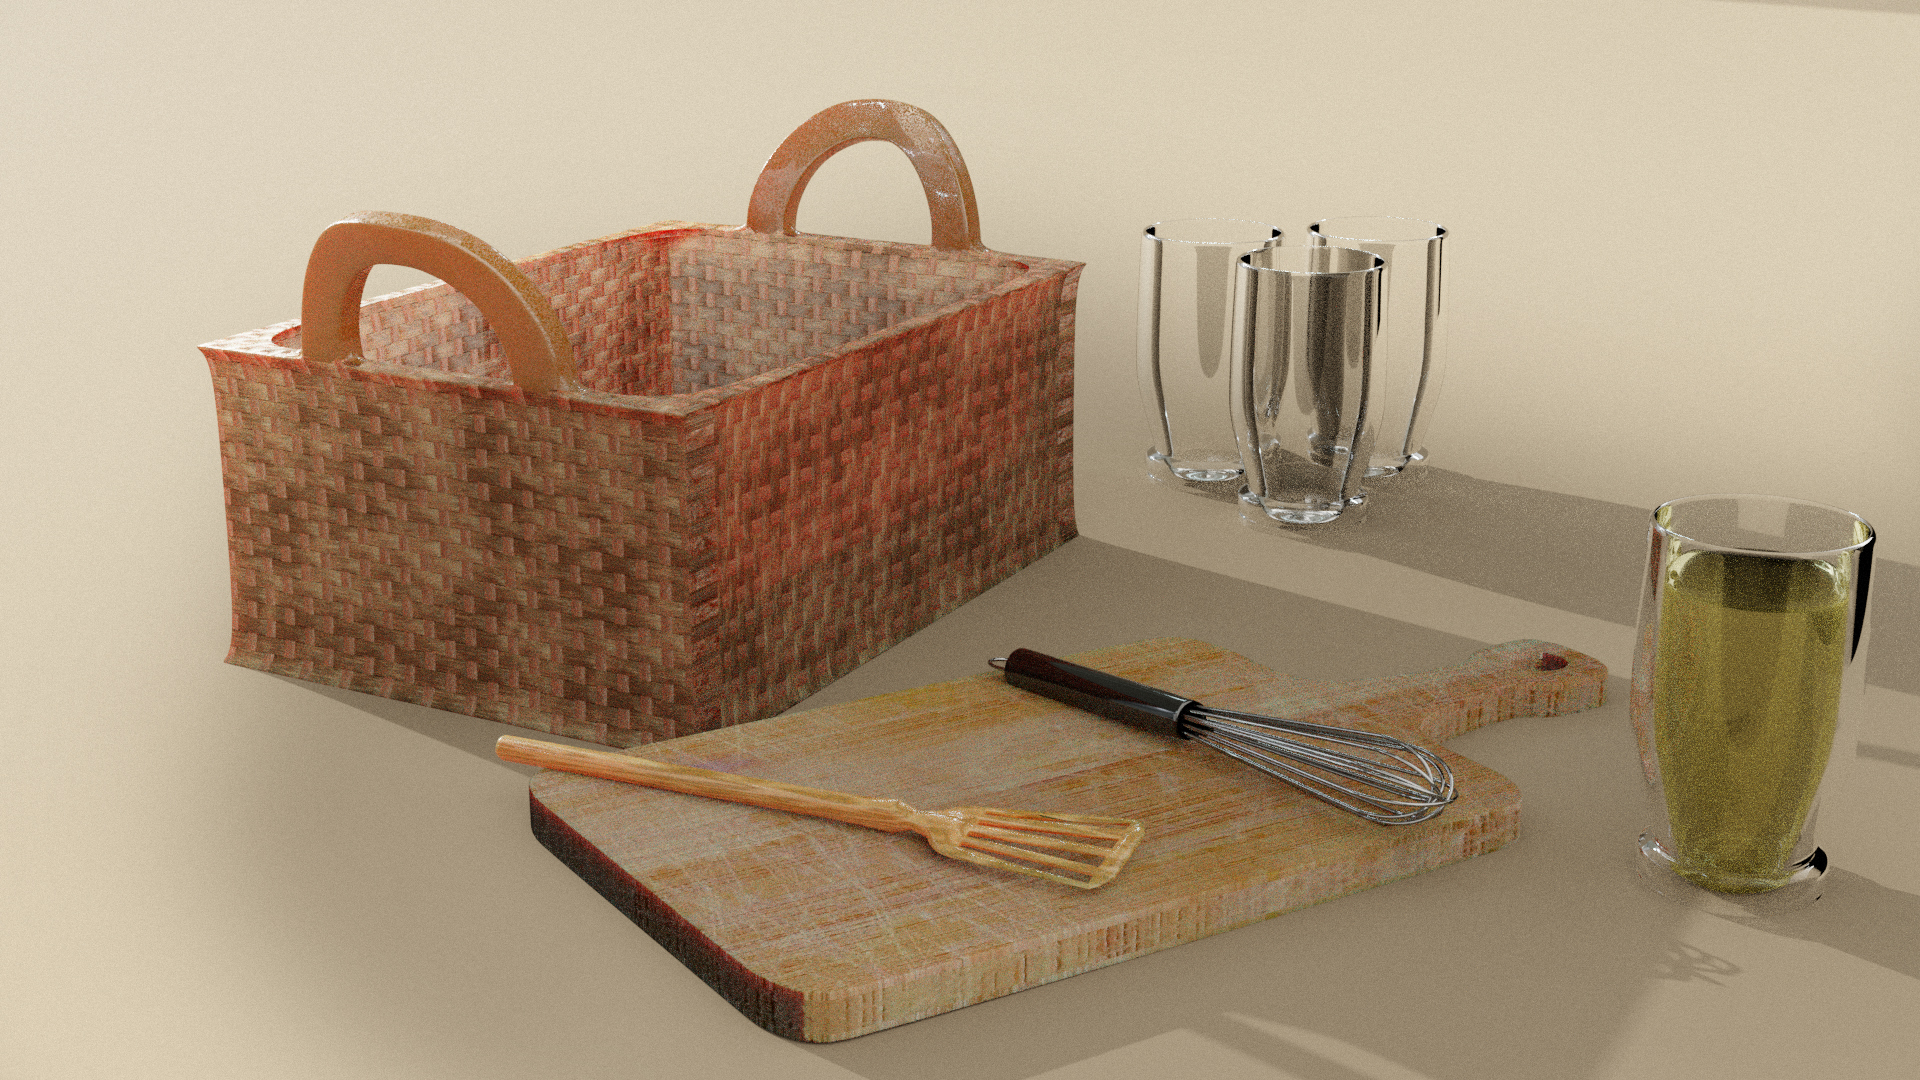 Vol2. Kitchen Essentials Asset Pack by Davilion preview image 12